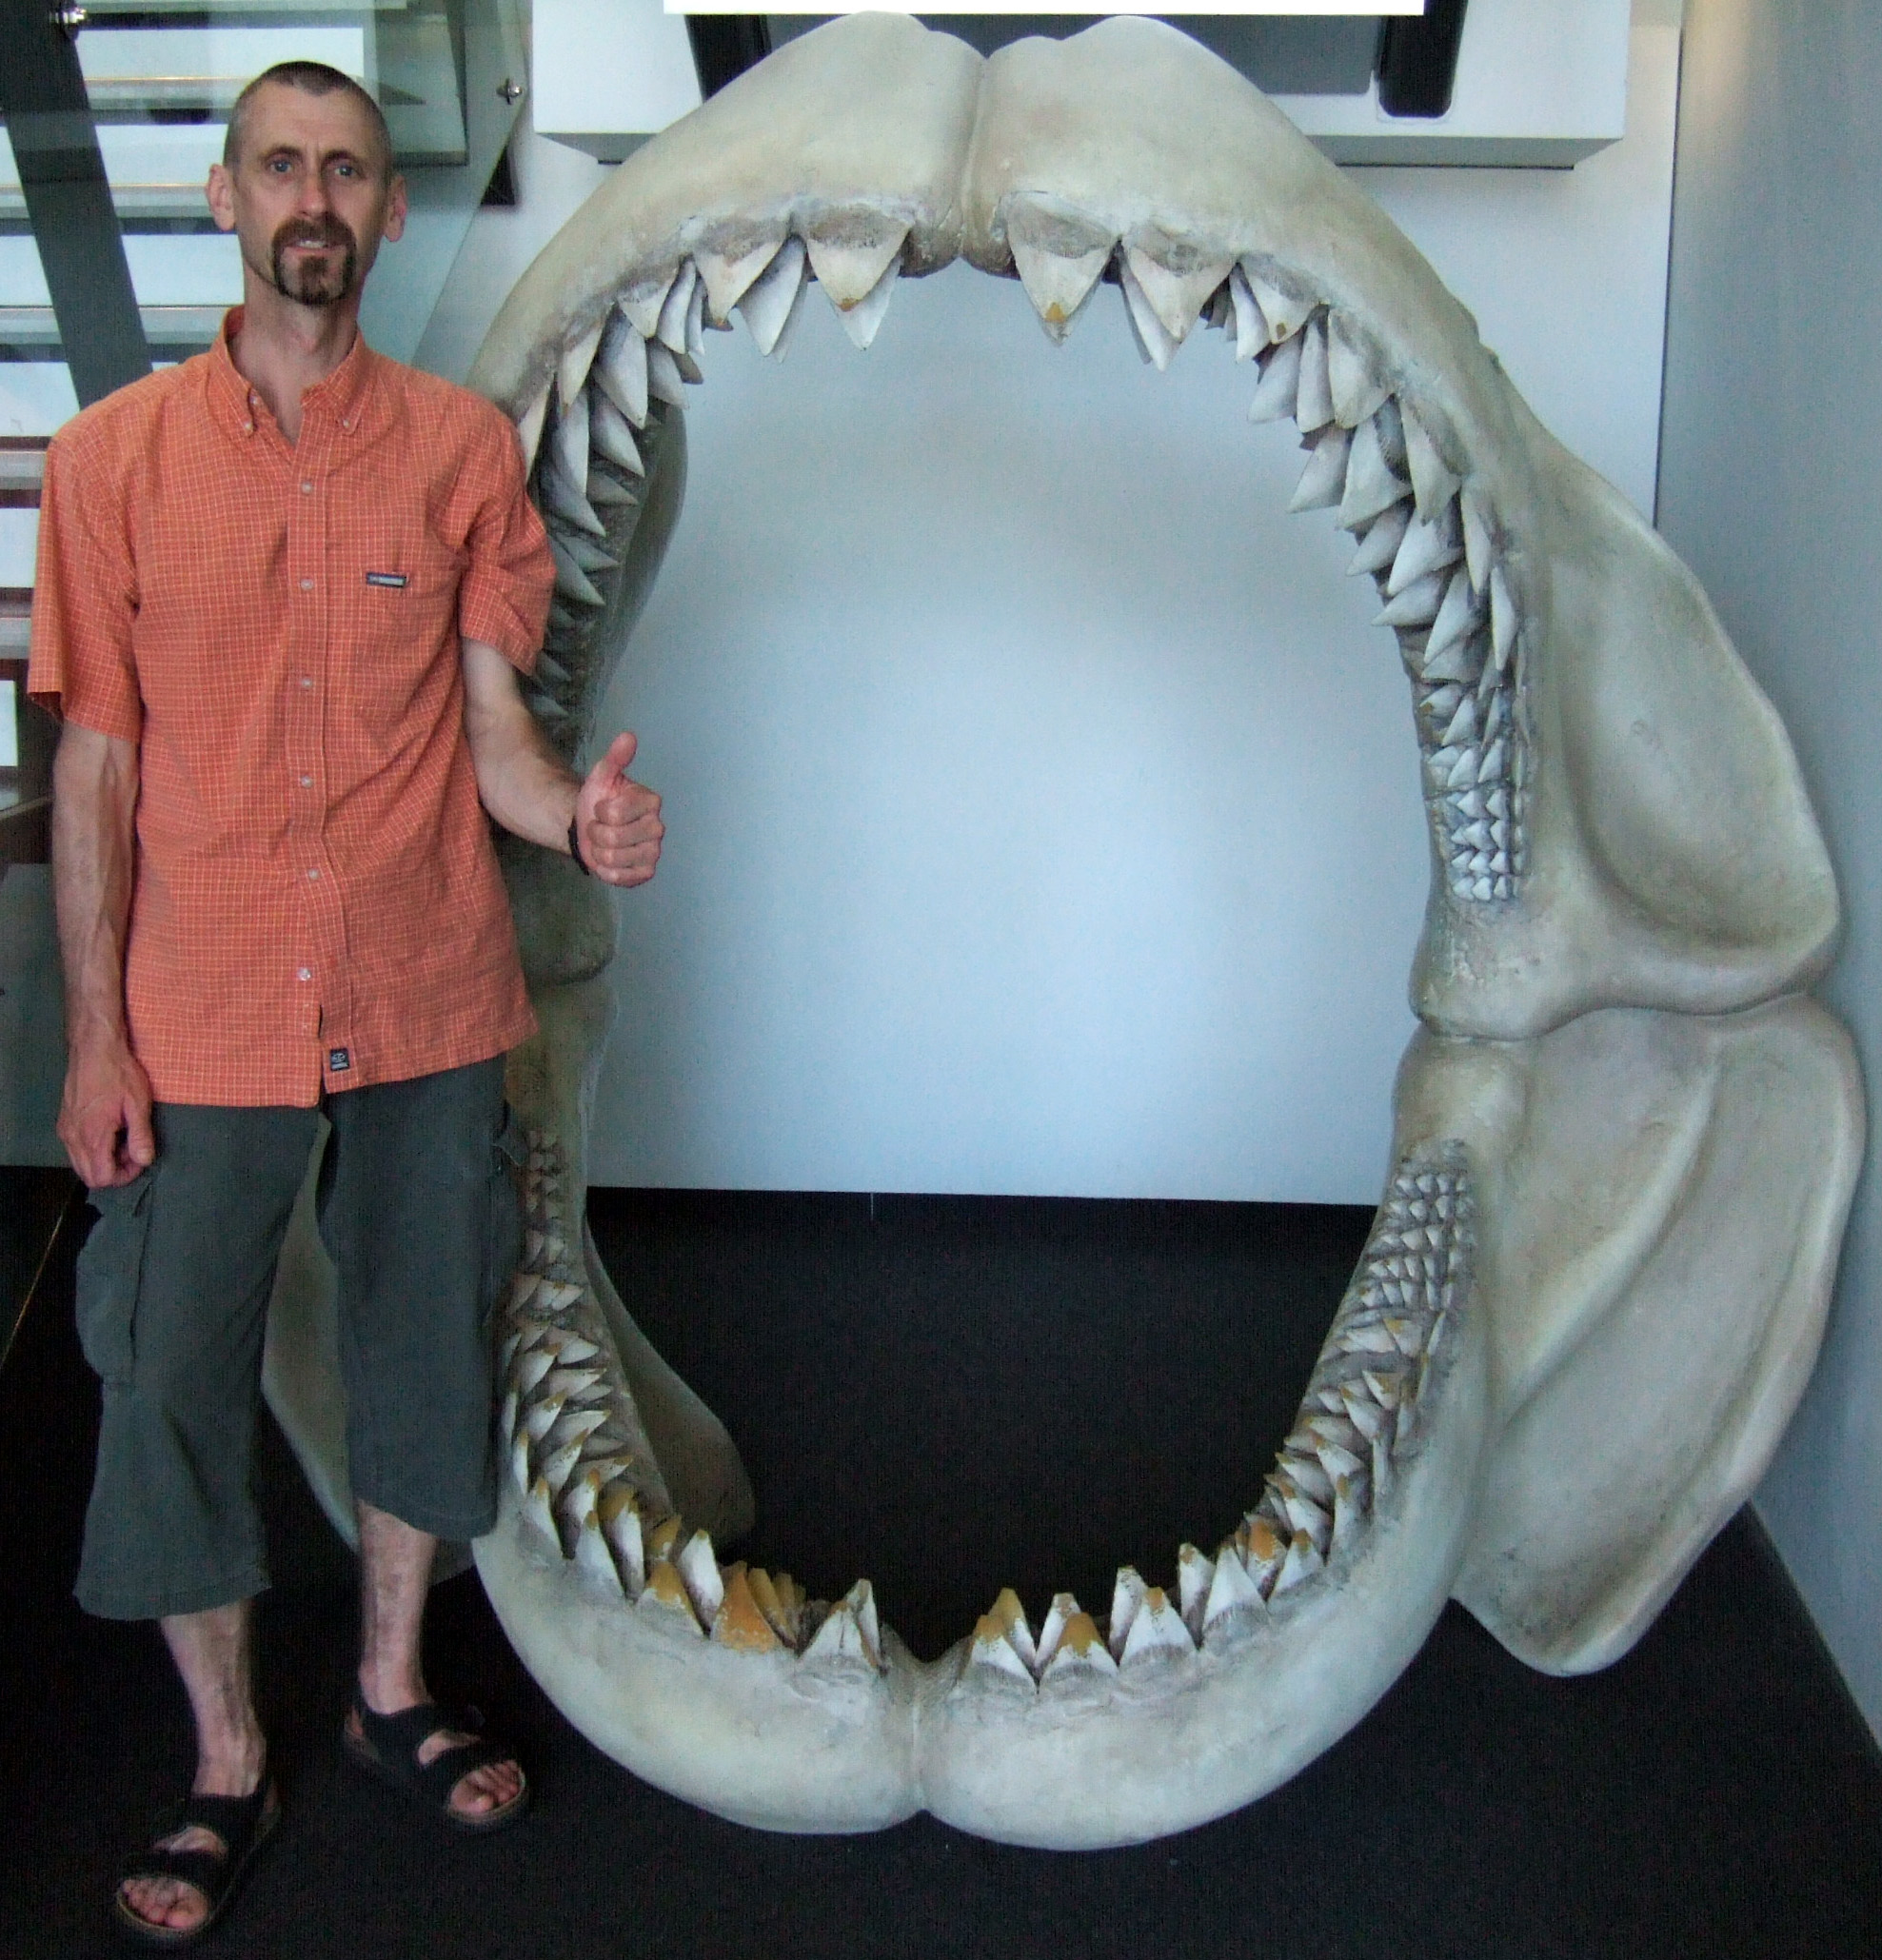 Blue+whale+size+compared+to+megalodon